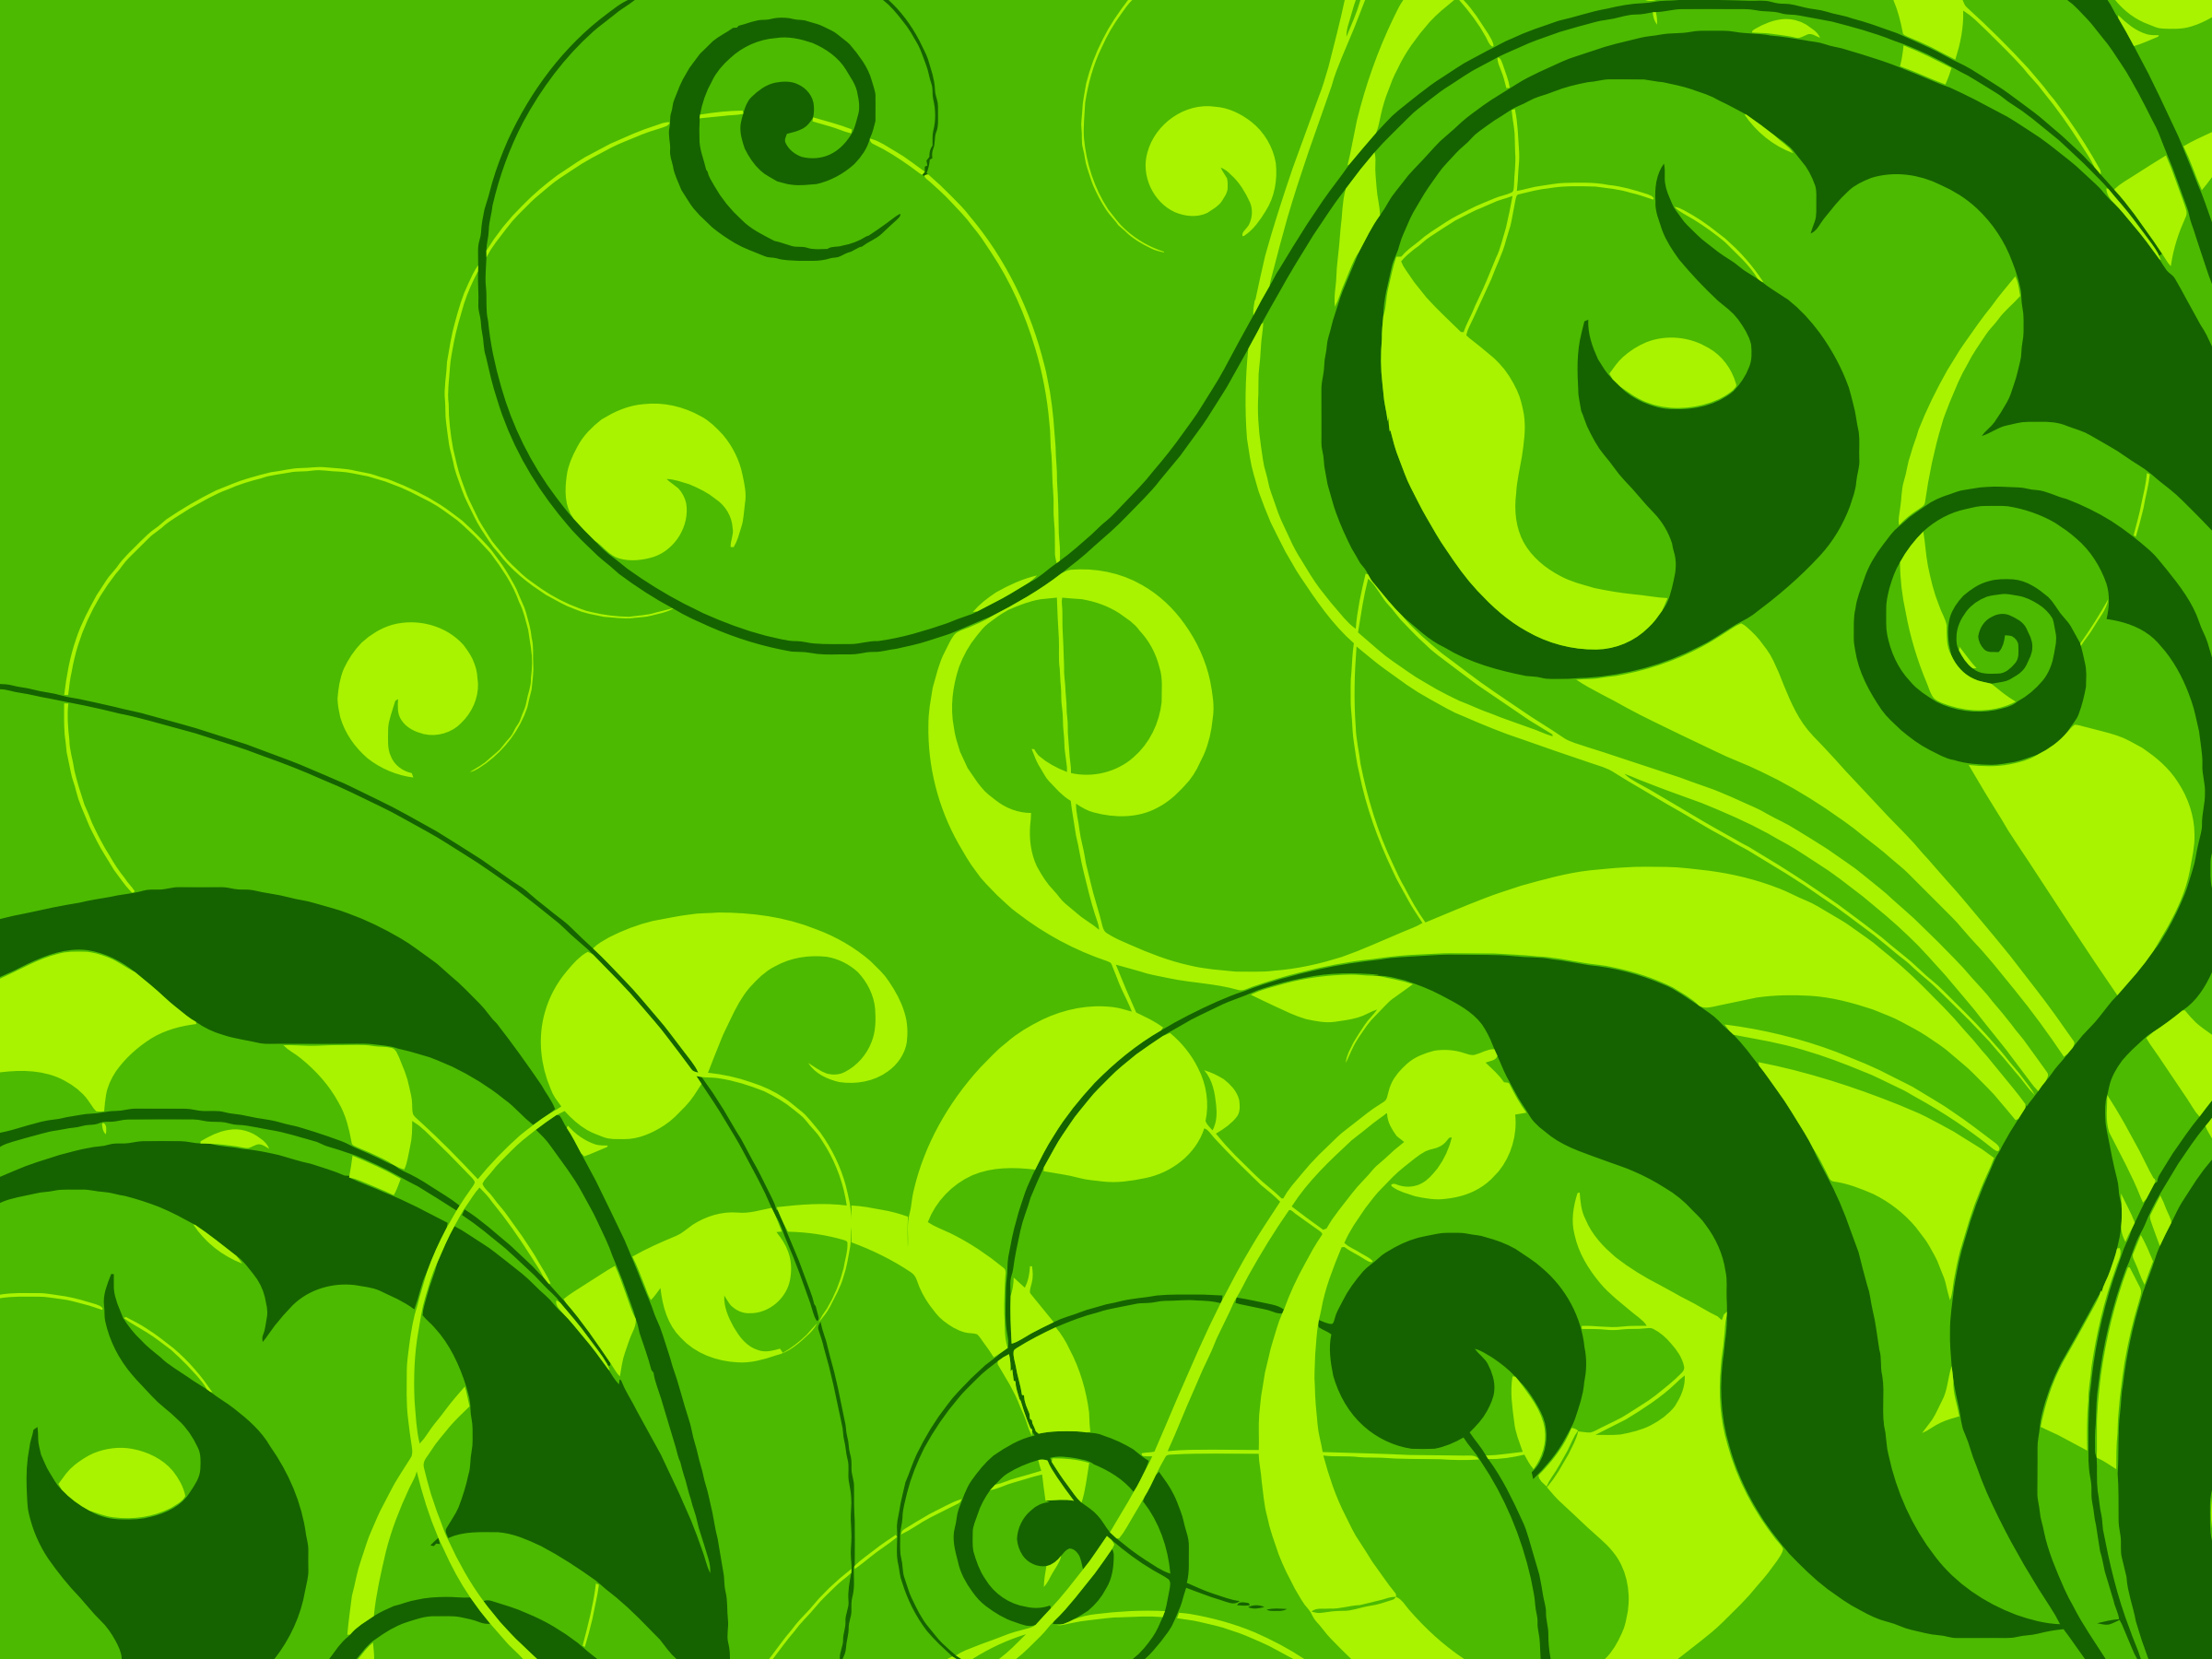 Flourish Background by GDJ